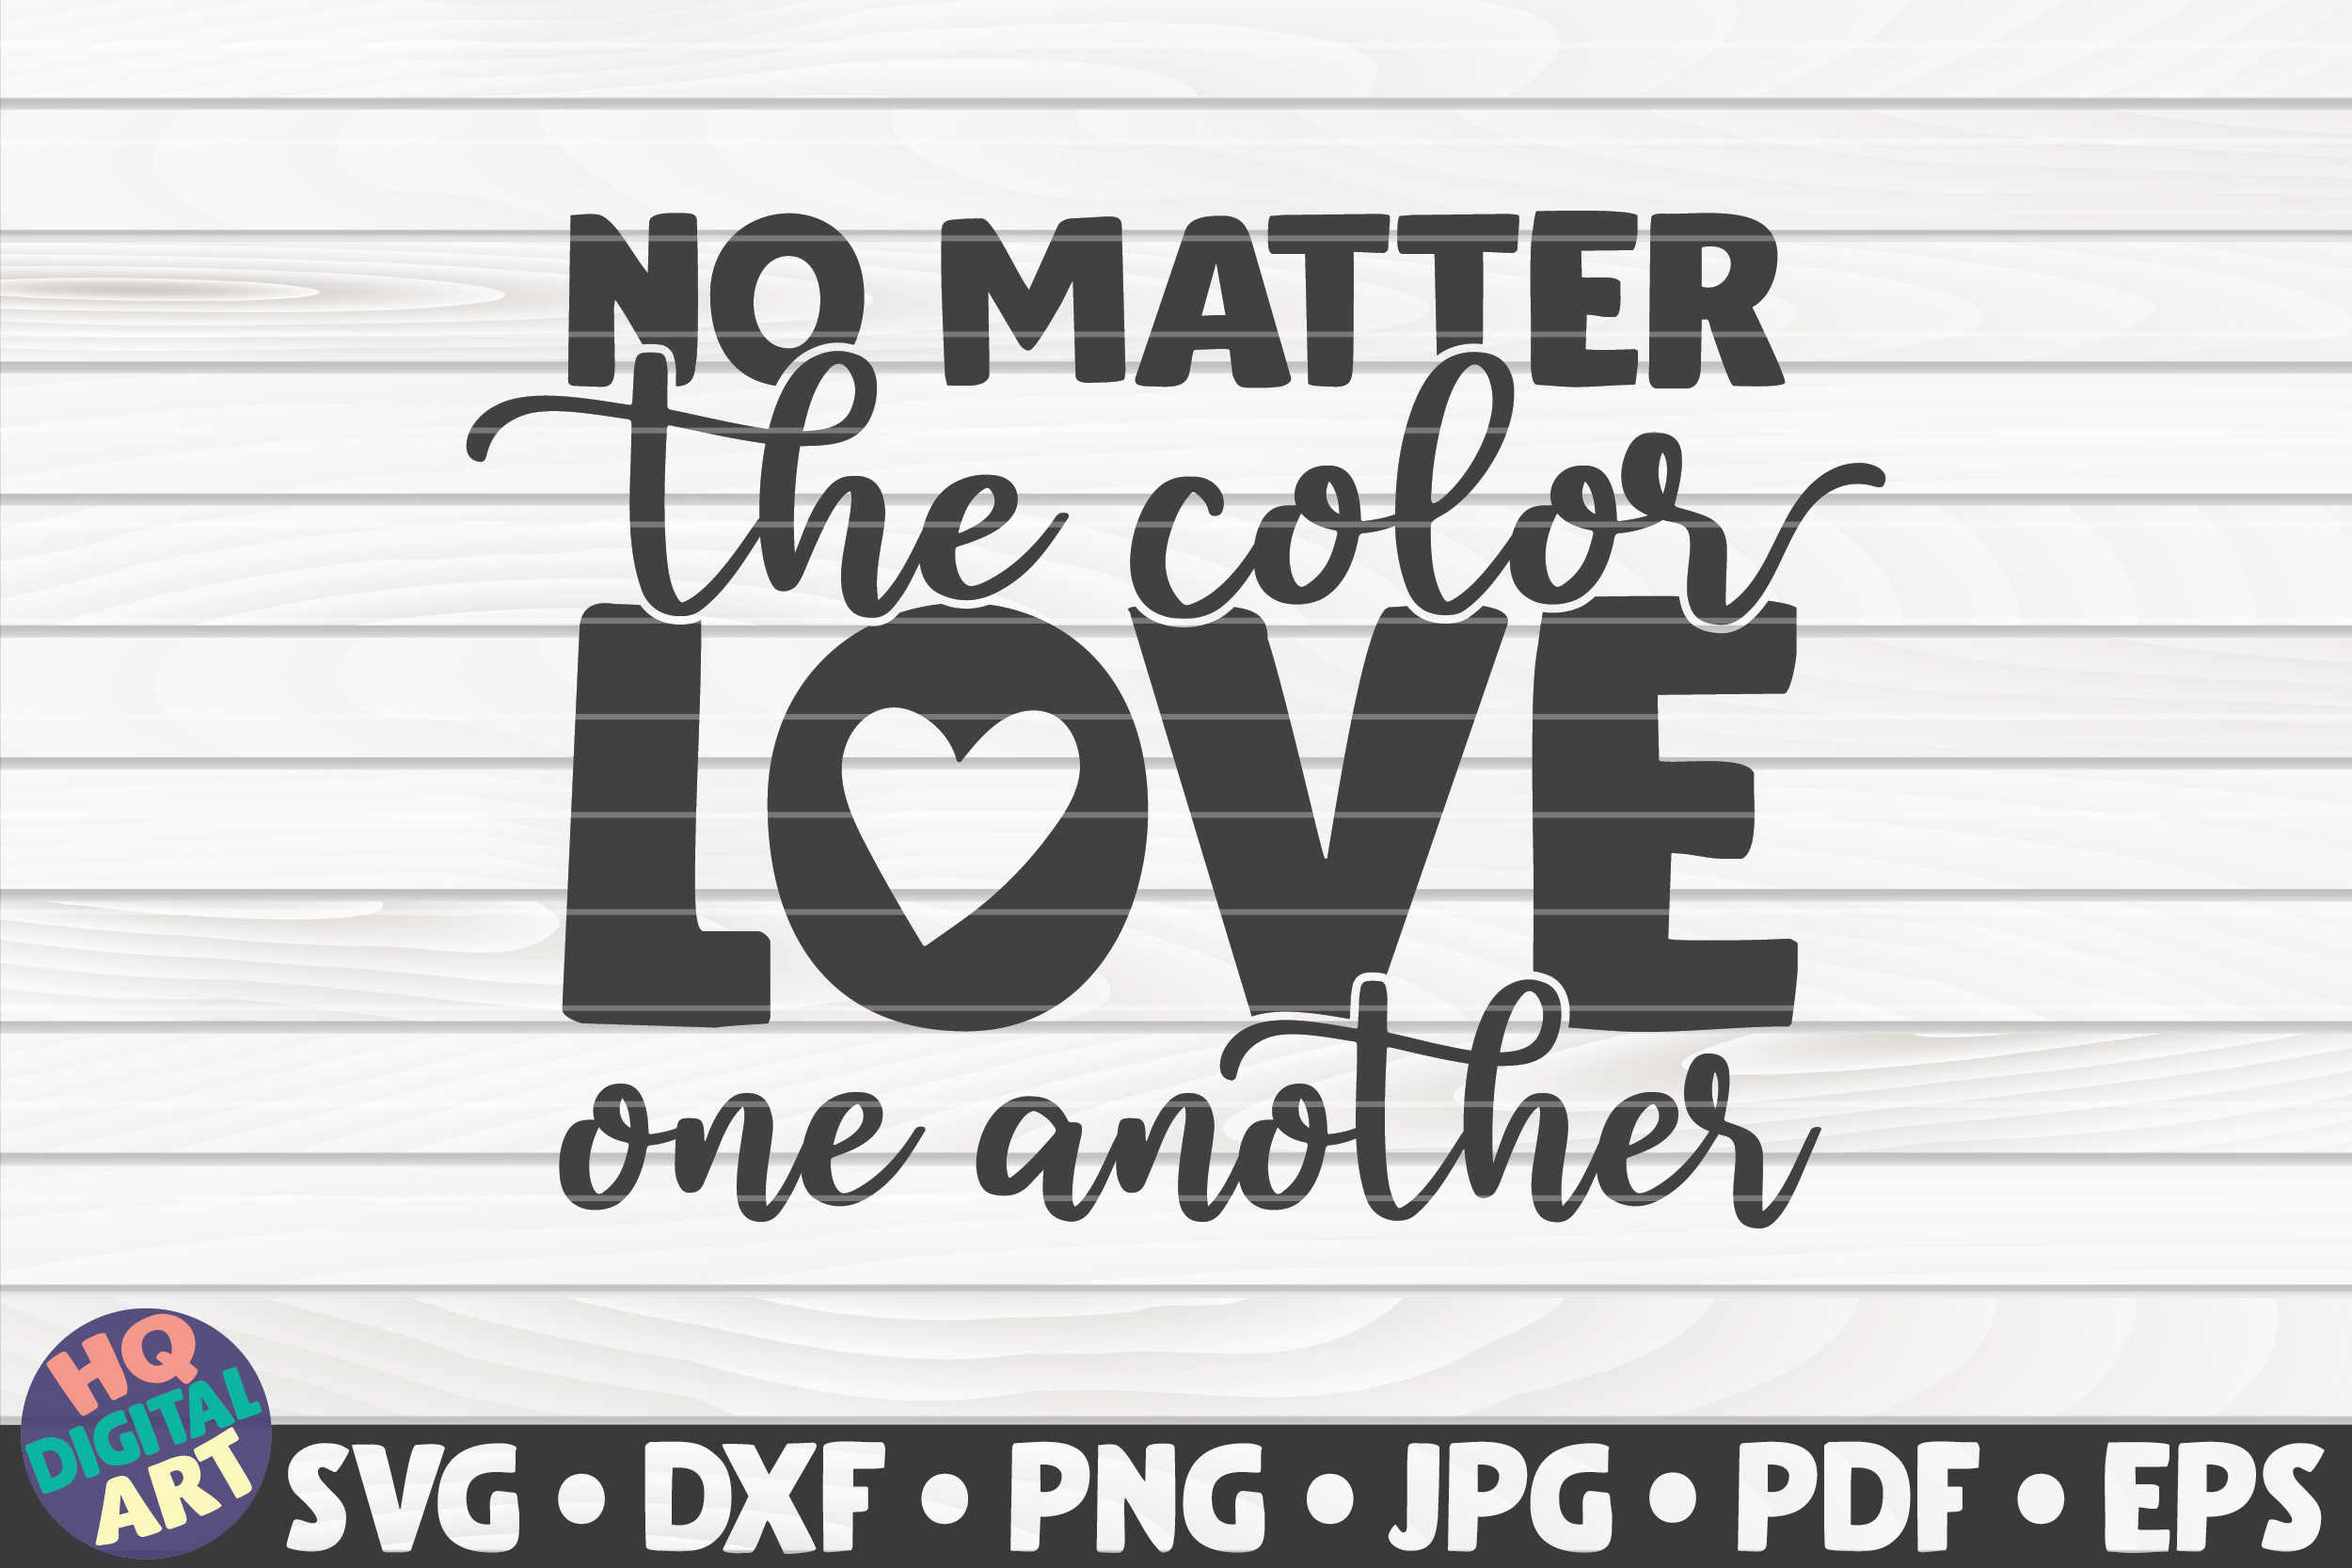 Download Free No Matter The Color Love One Another Graphic By Mihaibadea95 for Cricut Explore, Silhouette and other cutting machines.